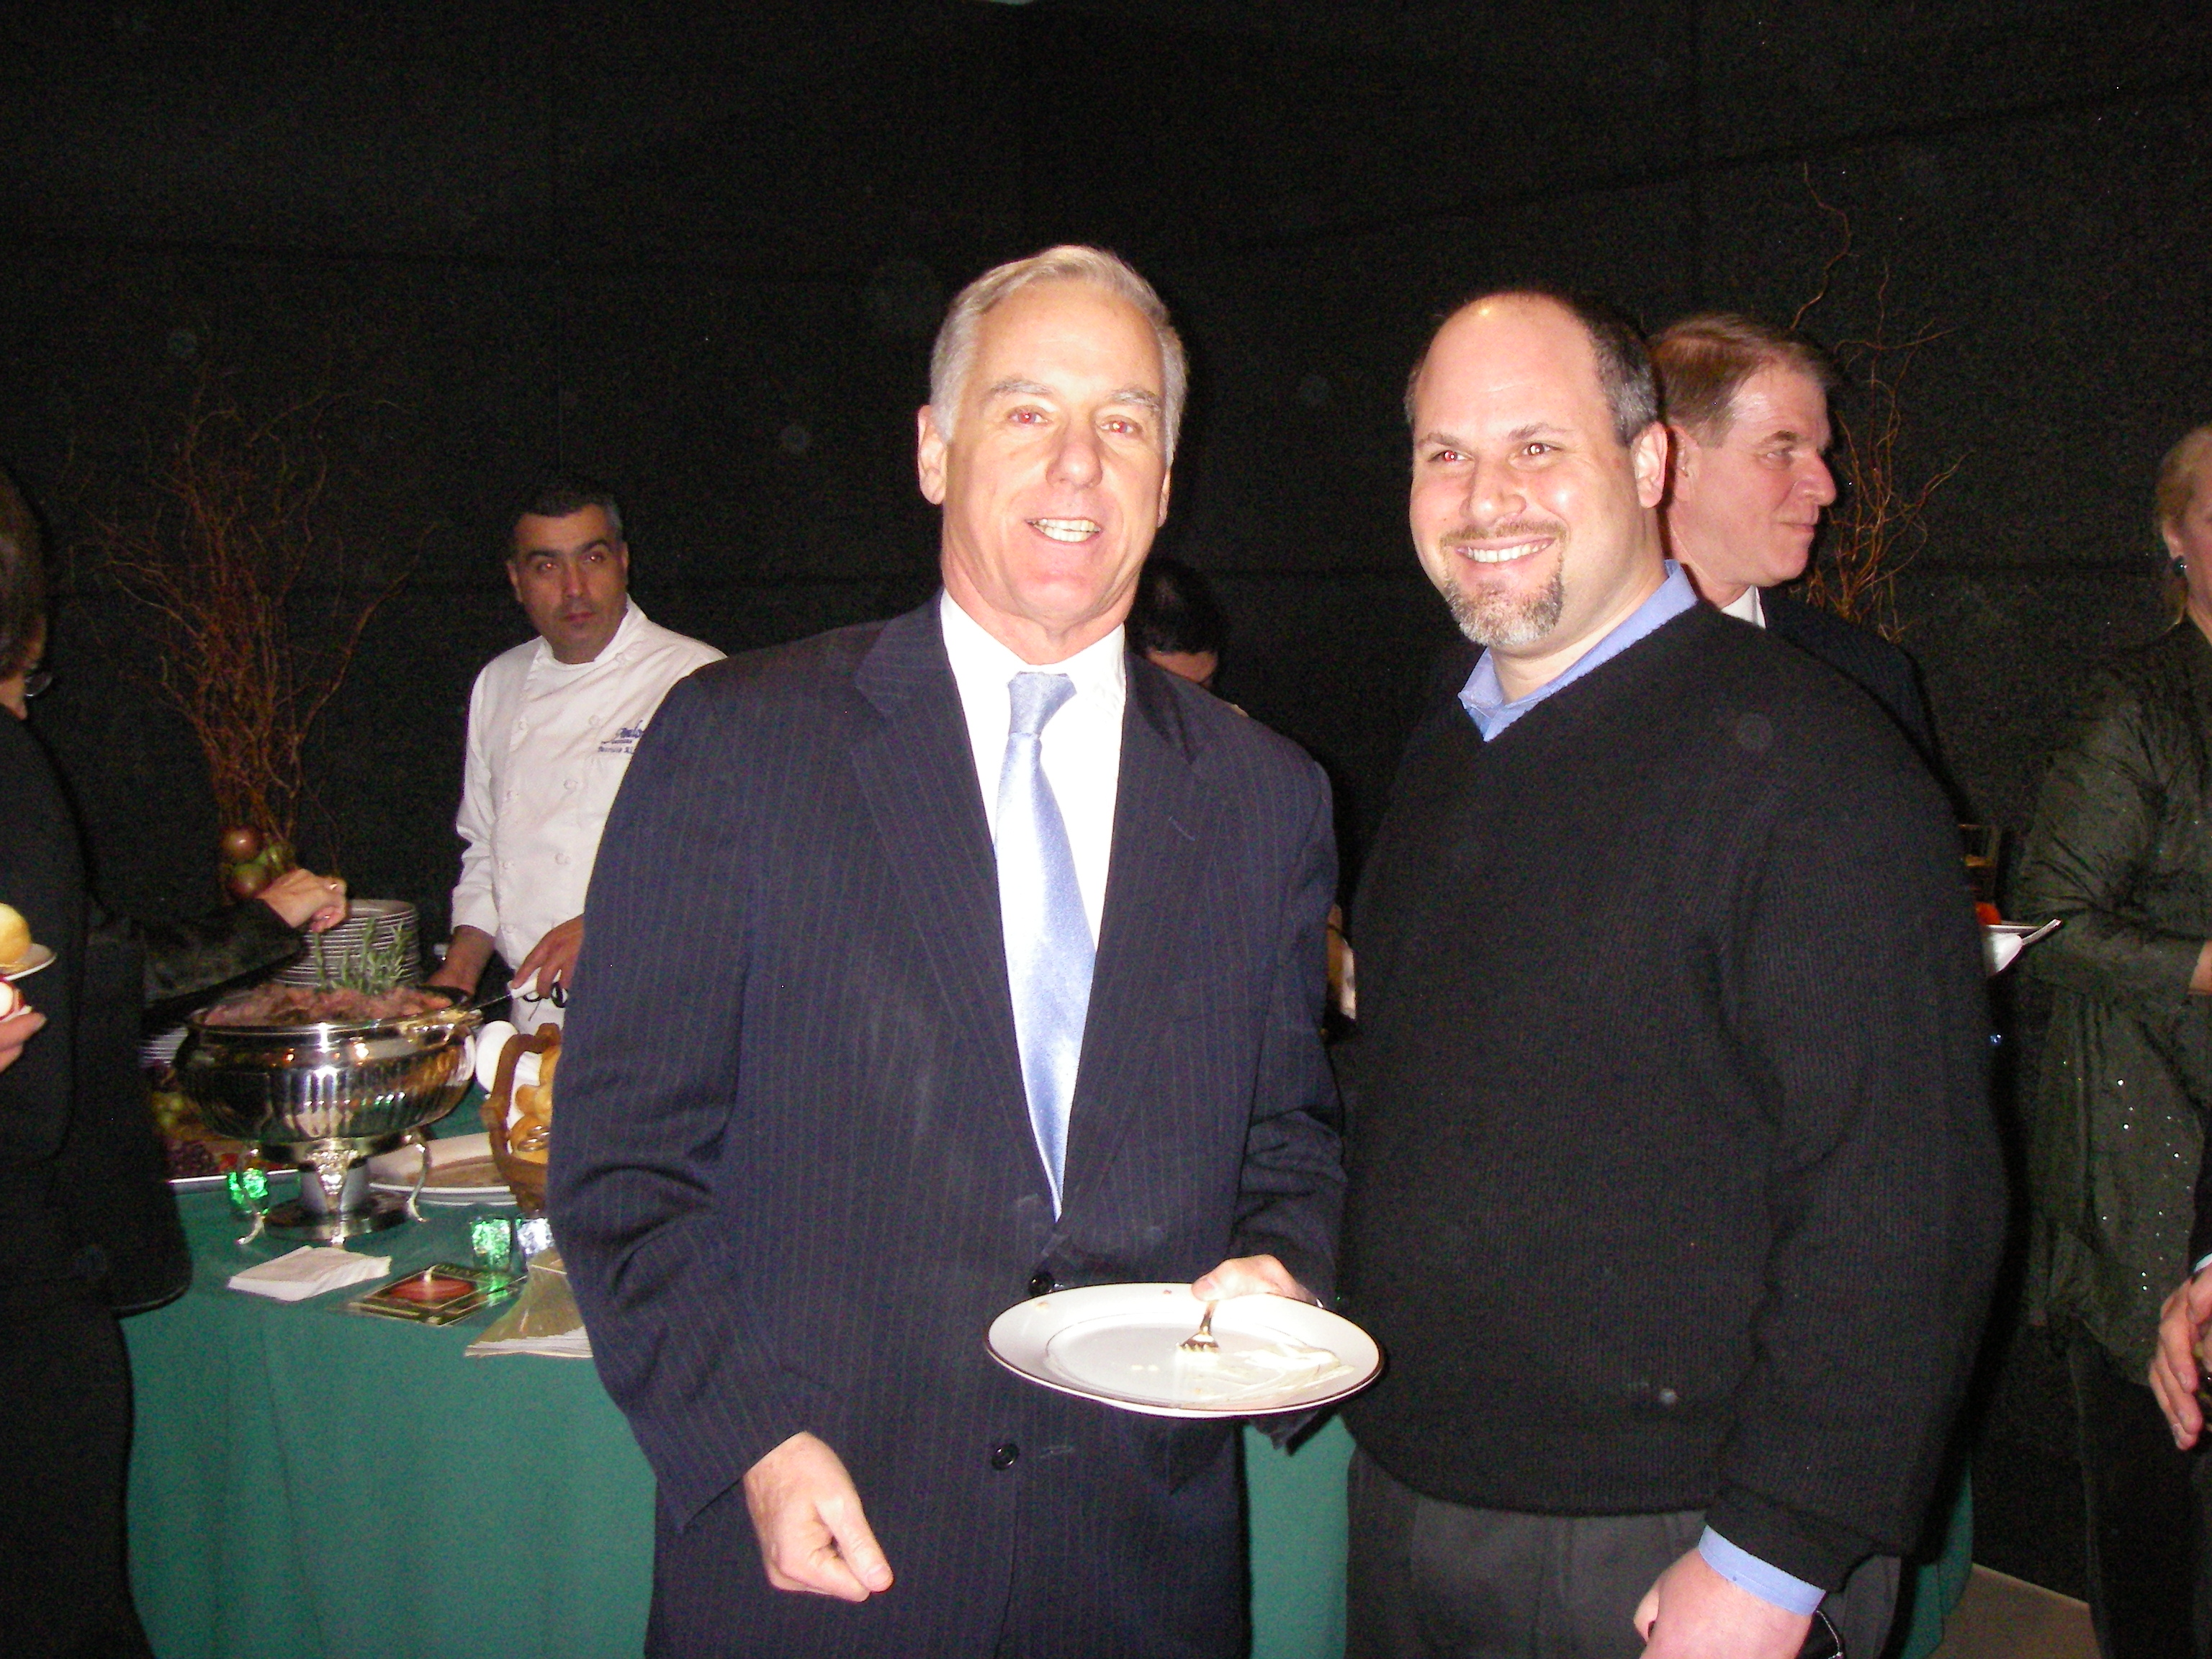 Howard Dean (on the left), at the Vermont State Society Reception